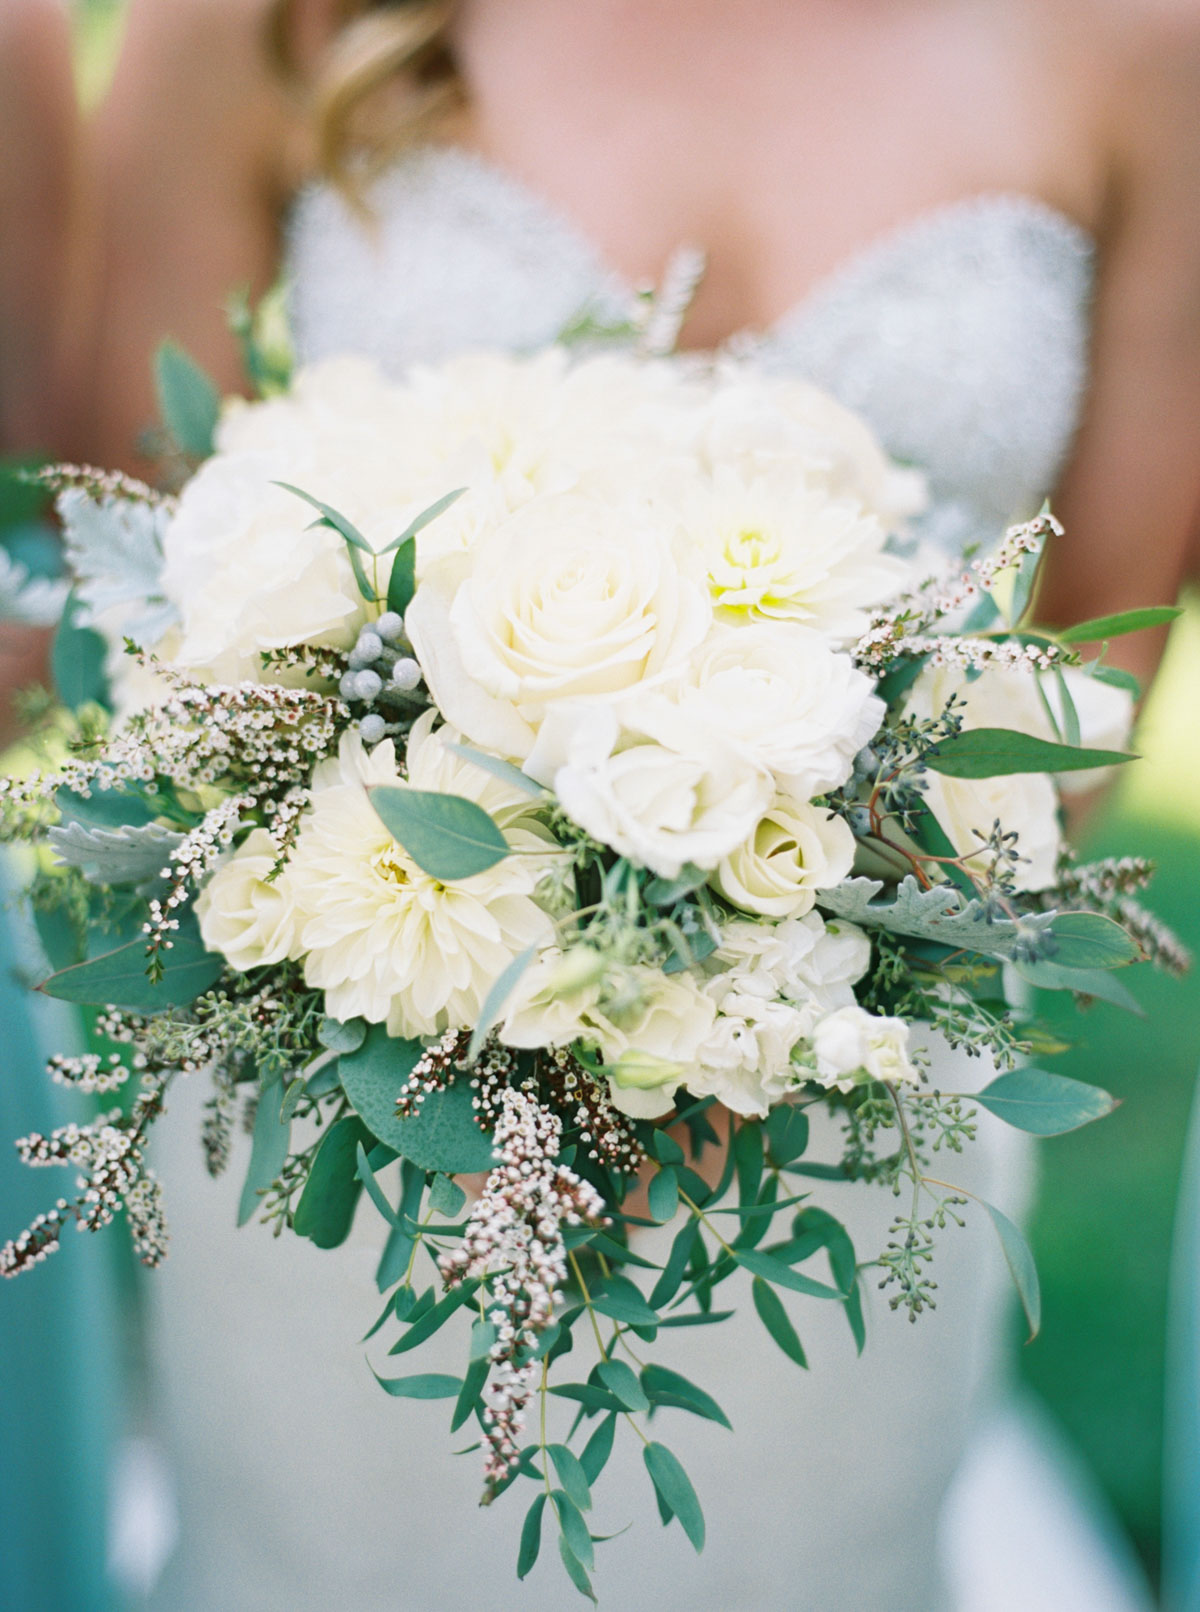 Elegant green and white wedding bouquet at Arbor Crest Winery by Fine Art Film Photographer Anna Peters